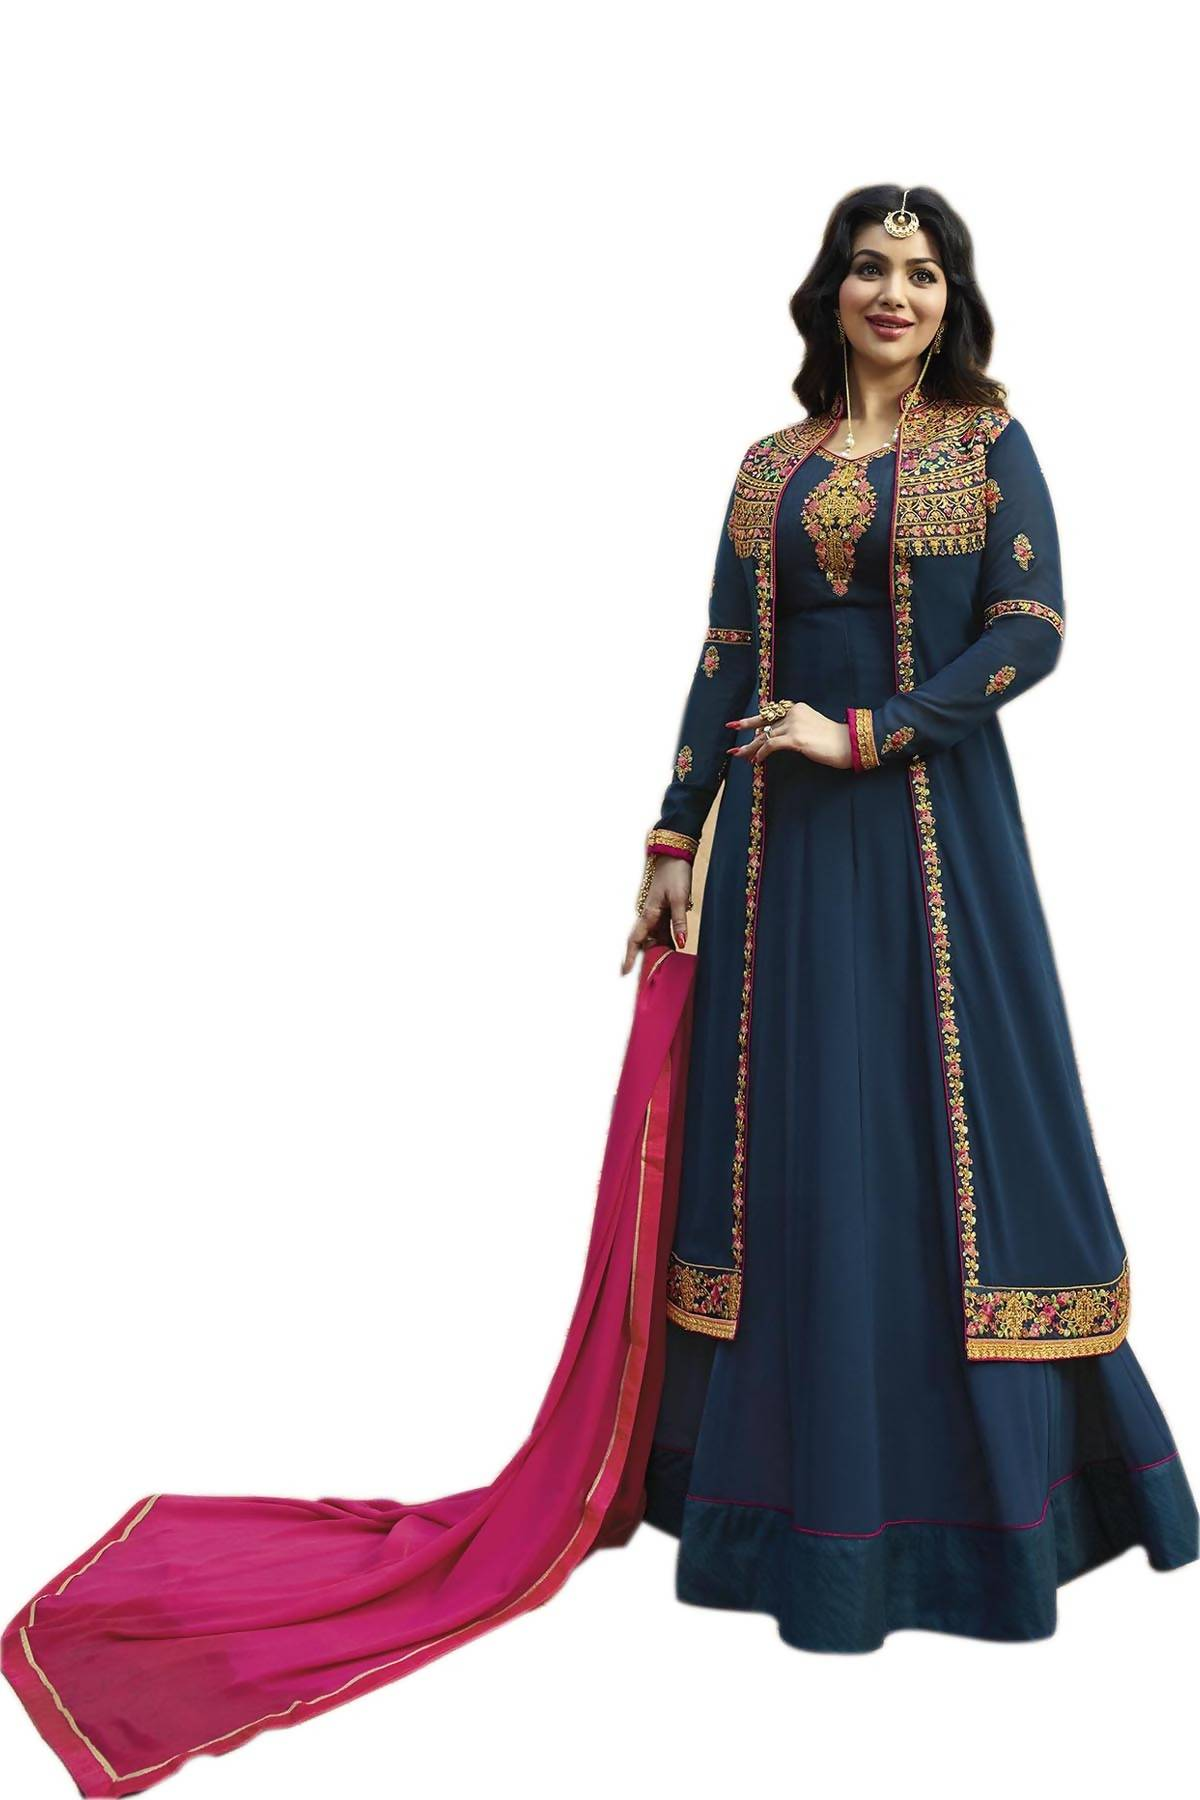 fe88c45d5c YOYO Fashion Latest Fancy Semi-stitched Faux Georgette Embroidered Anarkali  Salwar Suit $ F1225 ...